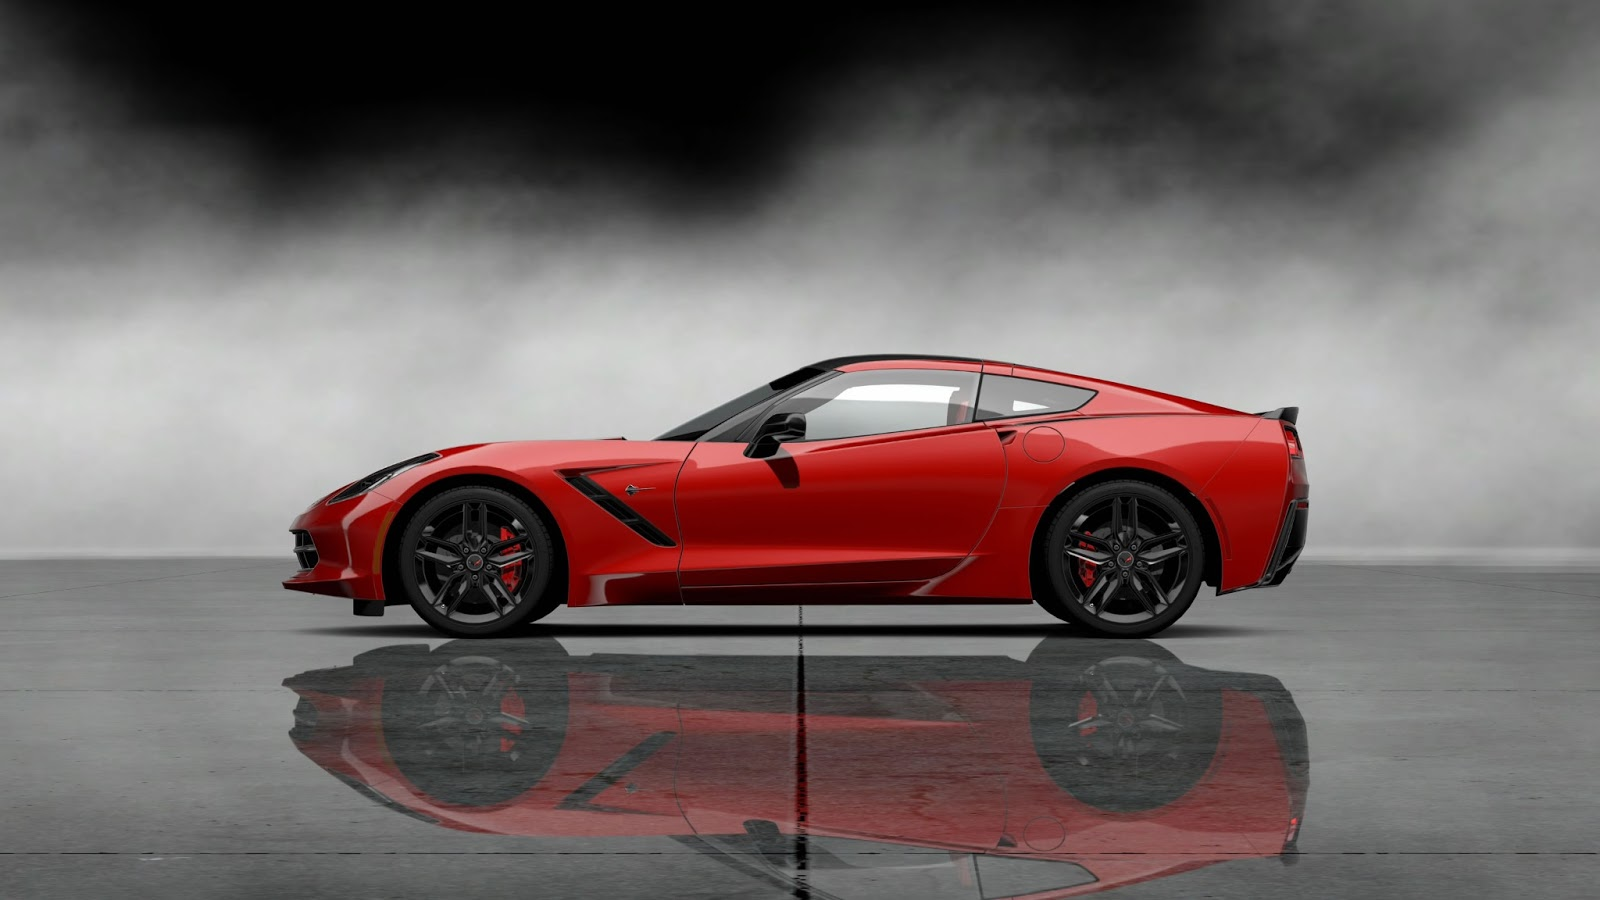 2014 Chevrolet Corvette Stingray Most Fuel Efficient Sports Car